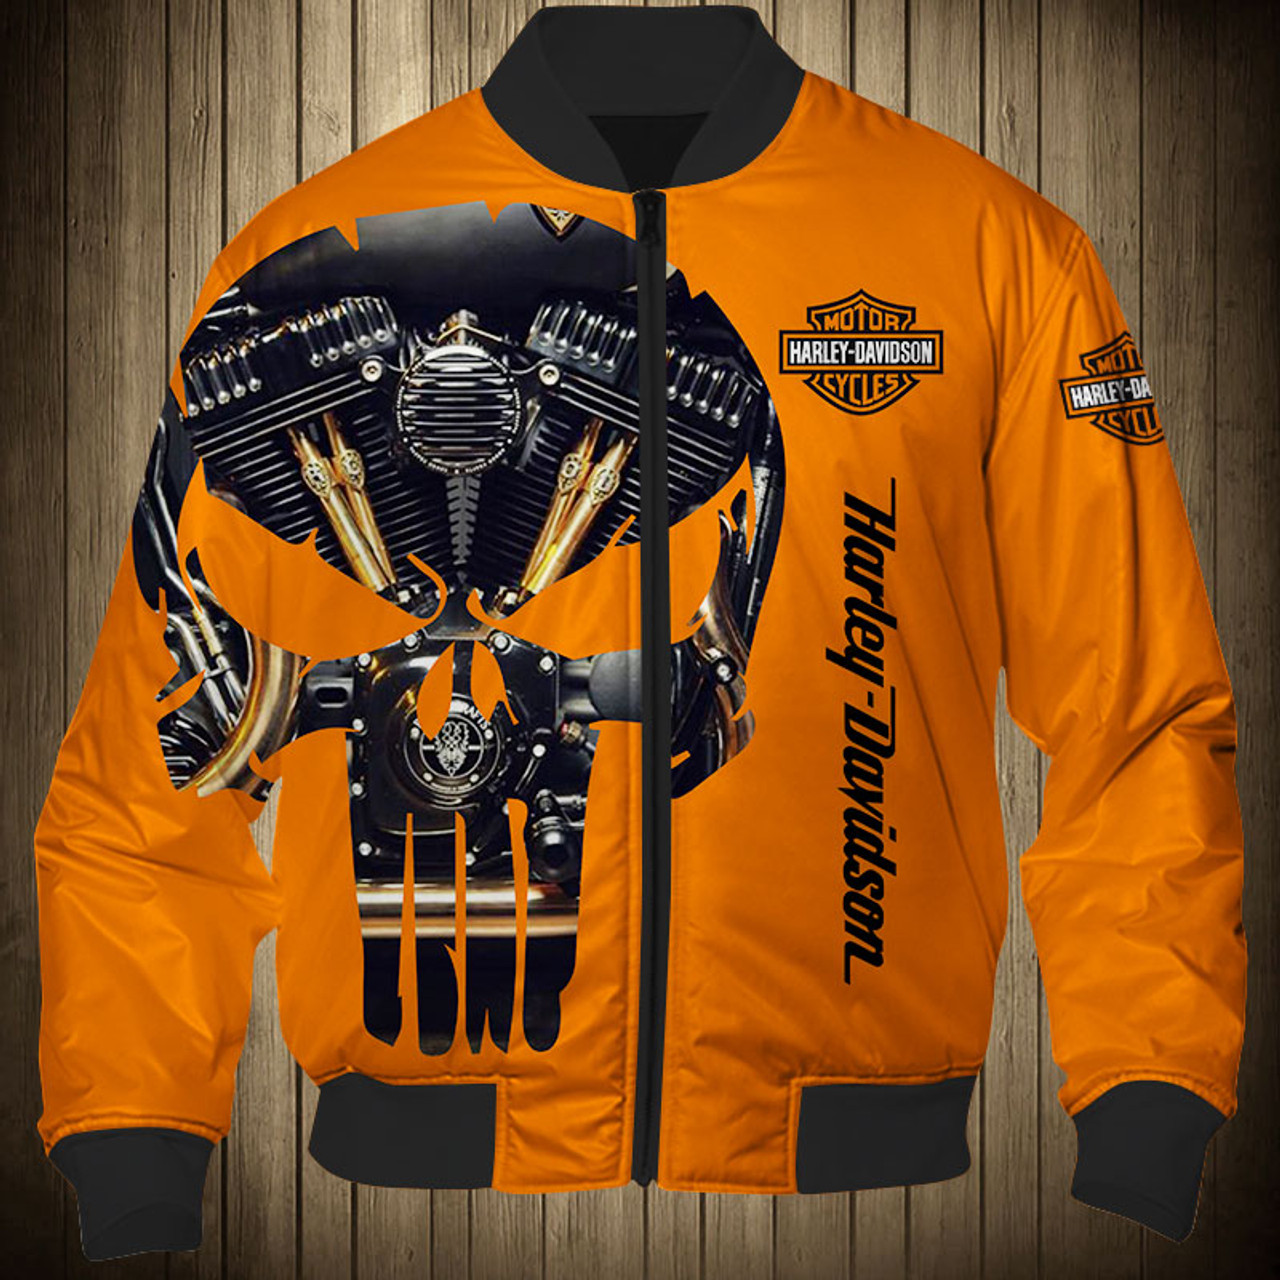 **(OFFICIAL-HARLEY-DAVIDSON-MOTORCYCLE-FLIGHT-JACKET/CUSTOM-DETAILED-3D-GRAPHIC-PRINTED-PUNISHER-SKULL-TWIN-ENGINE-DESIGN/FEATURING-OFFICIAL-CUSTOM-HARLEY-3D-LOGOS & OFFICIAL-CLASSIC-HARLEY-ORANGE-COLORS/WARM-PREMIUM-HARLEY-RIDING-FLIGHT-JACKETS)**